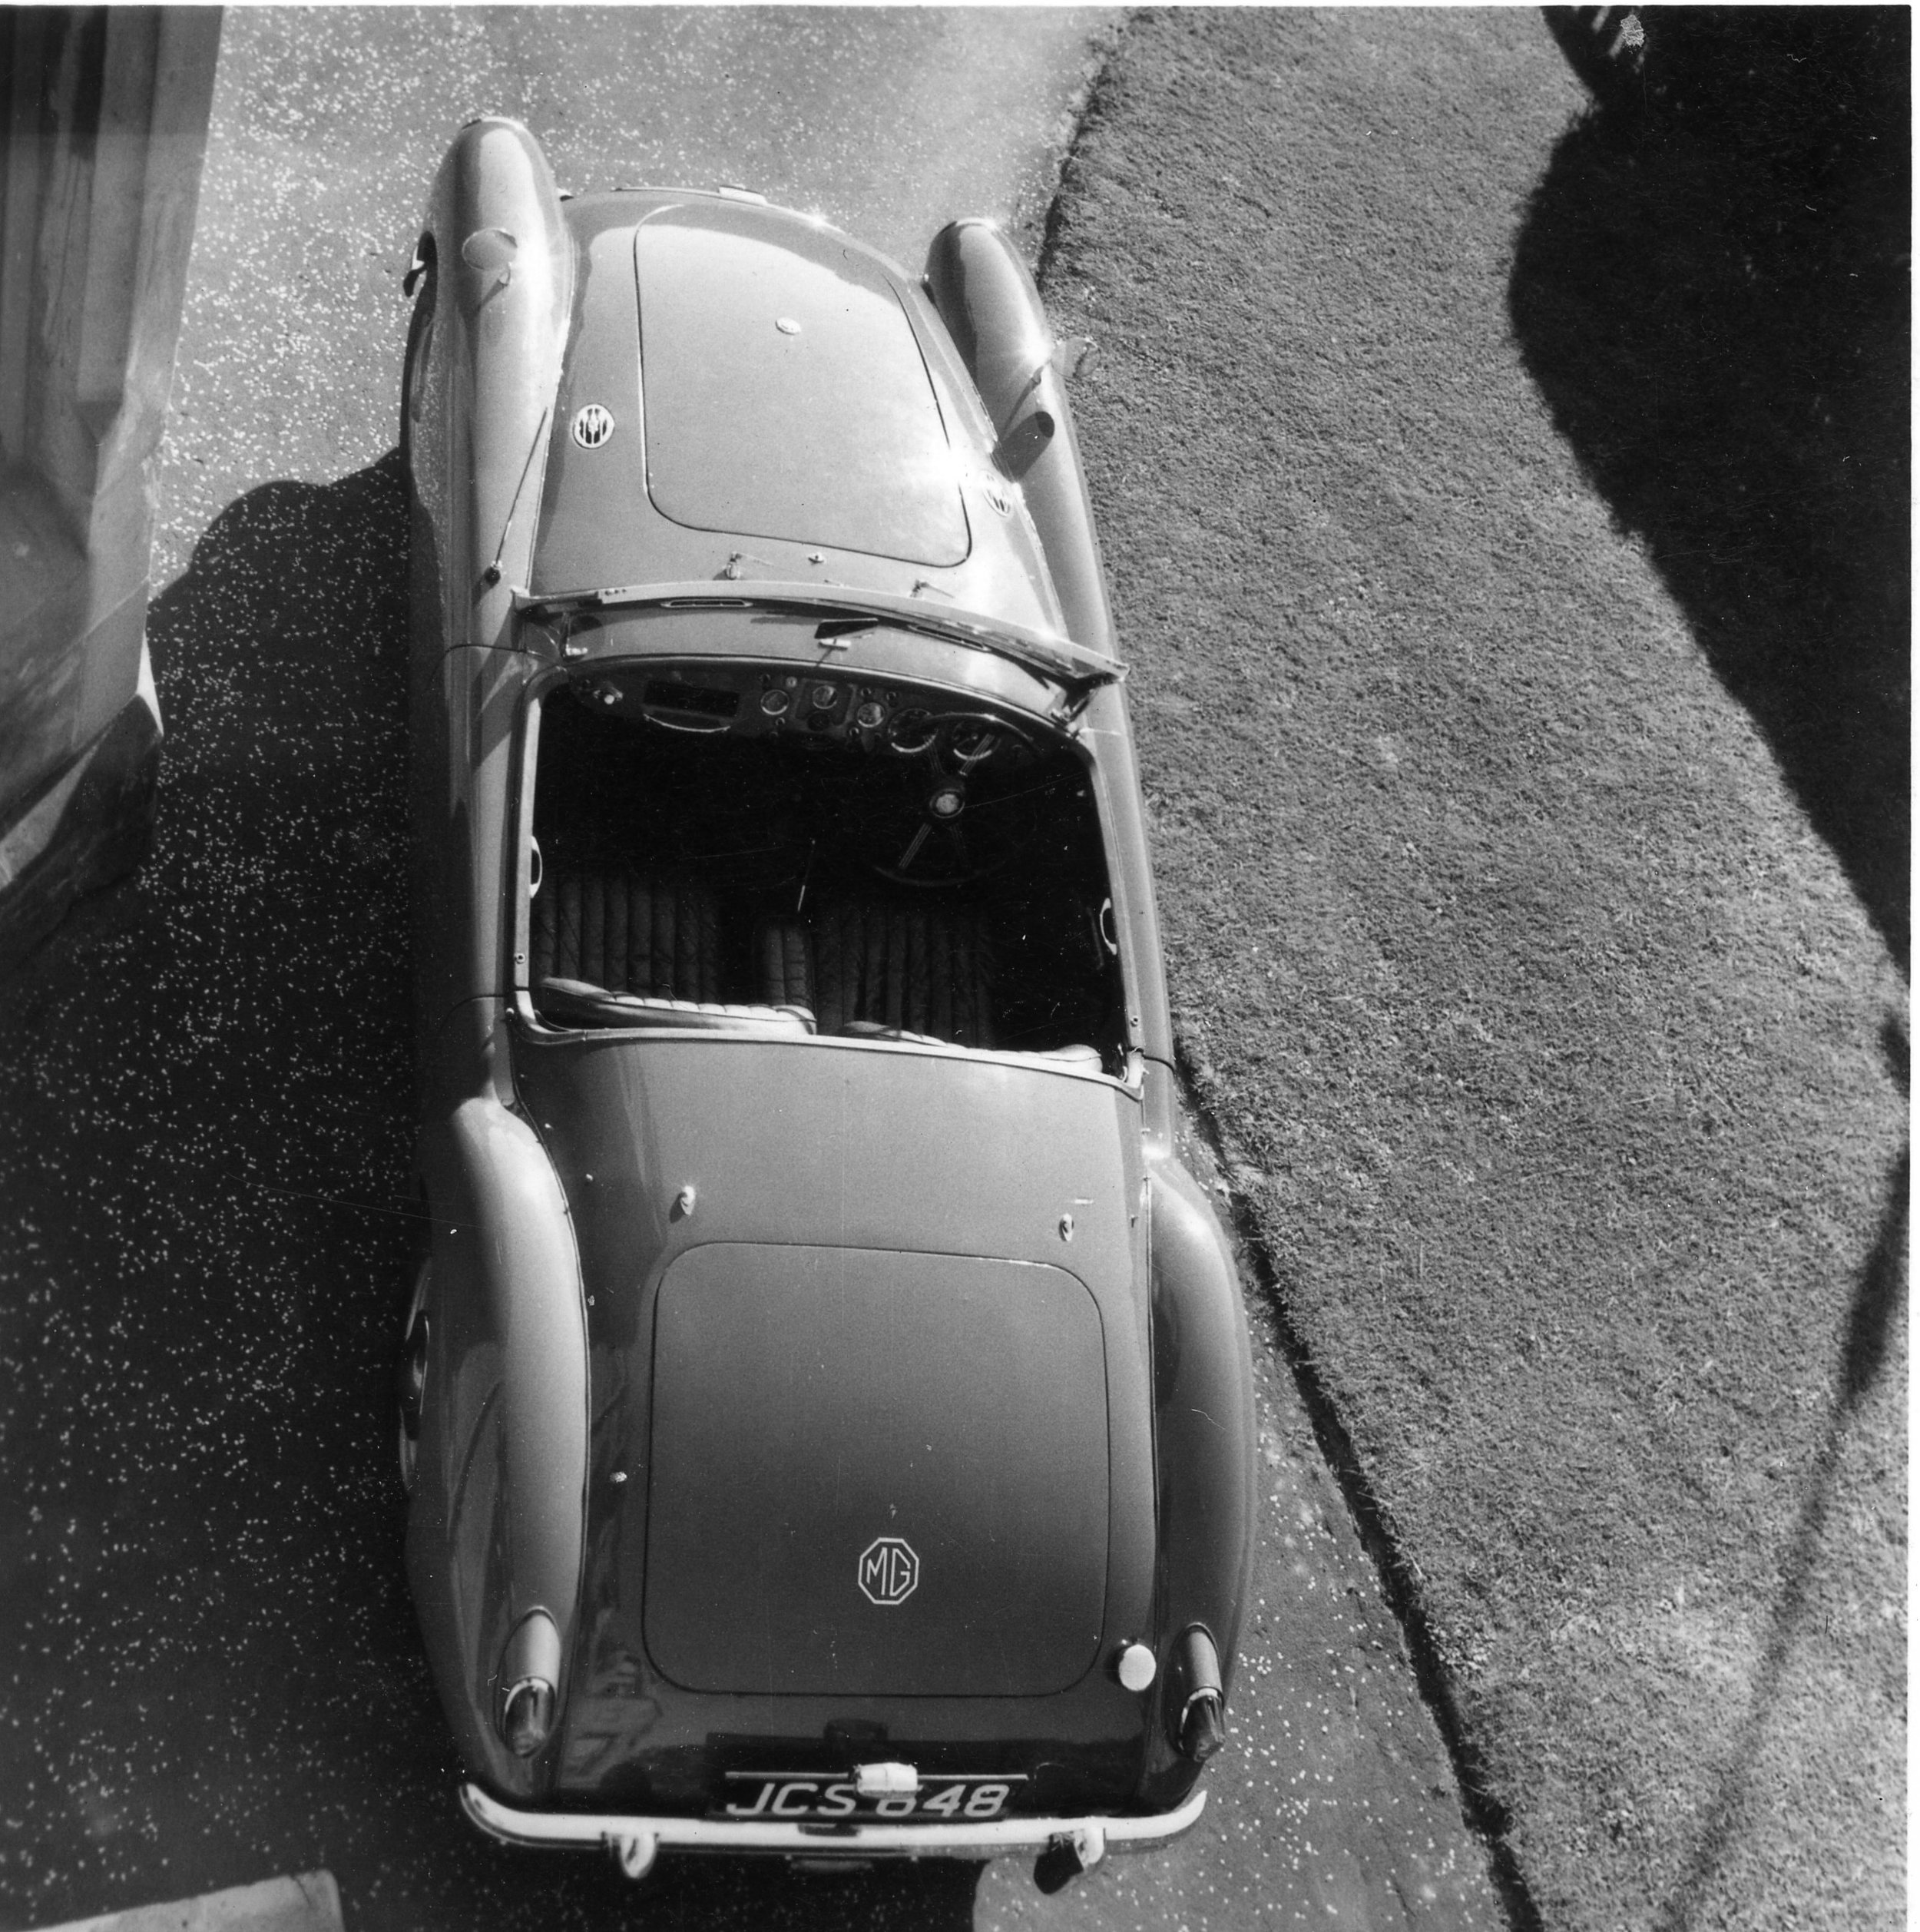 My MGA. 1950s masterpiece. What joy it was